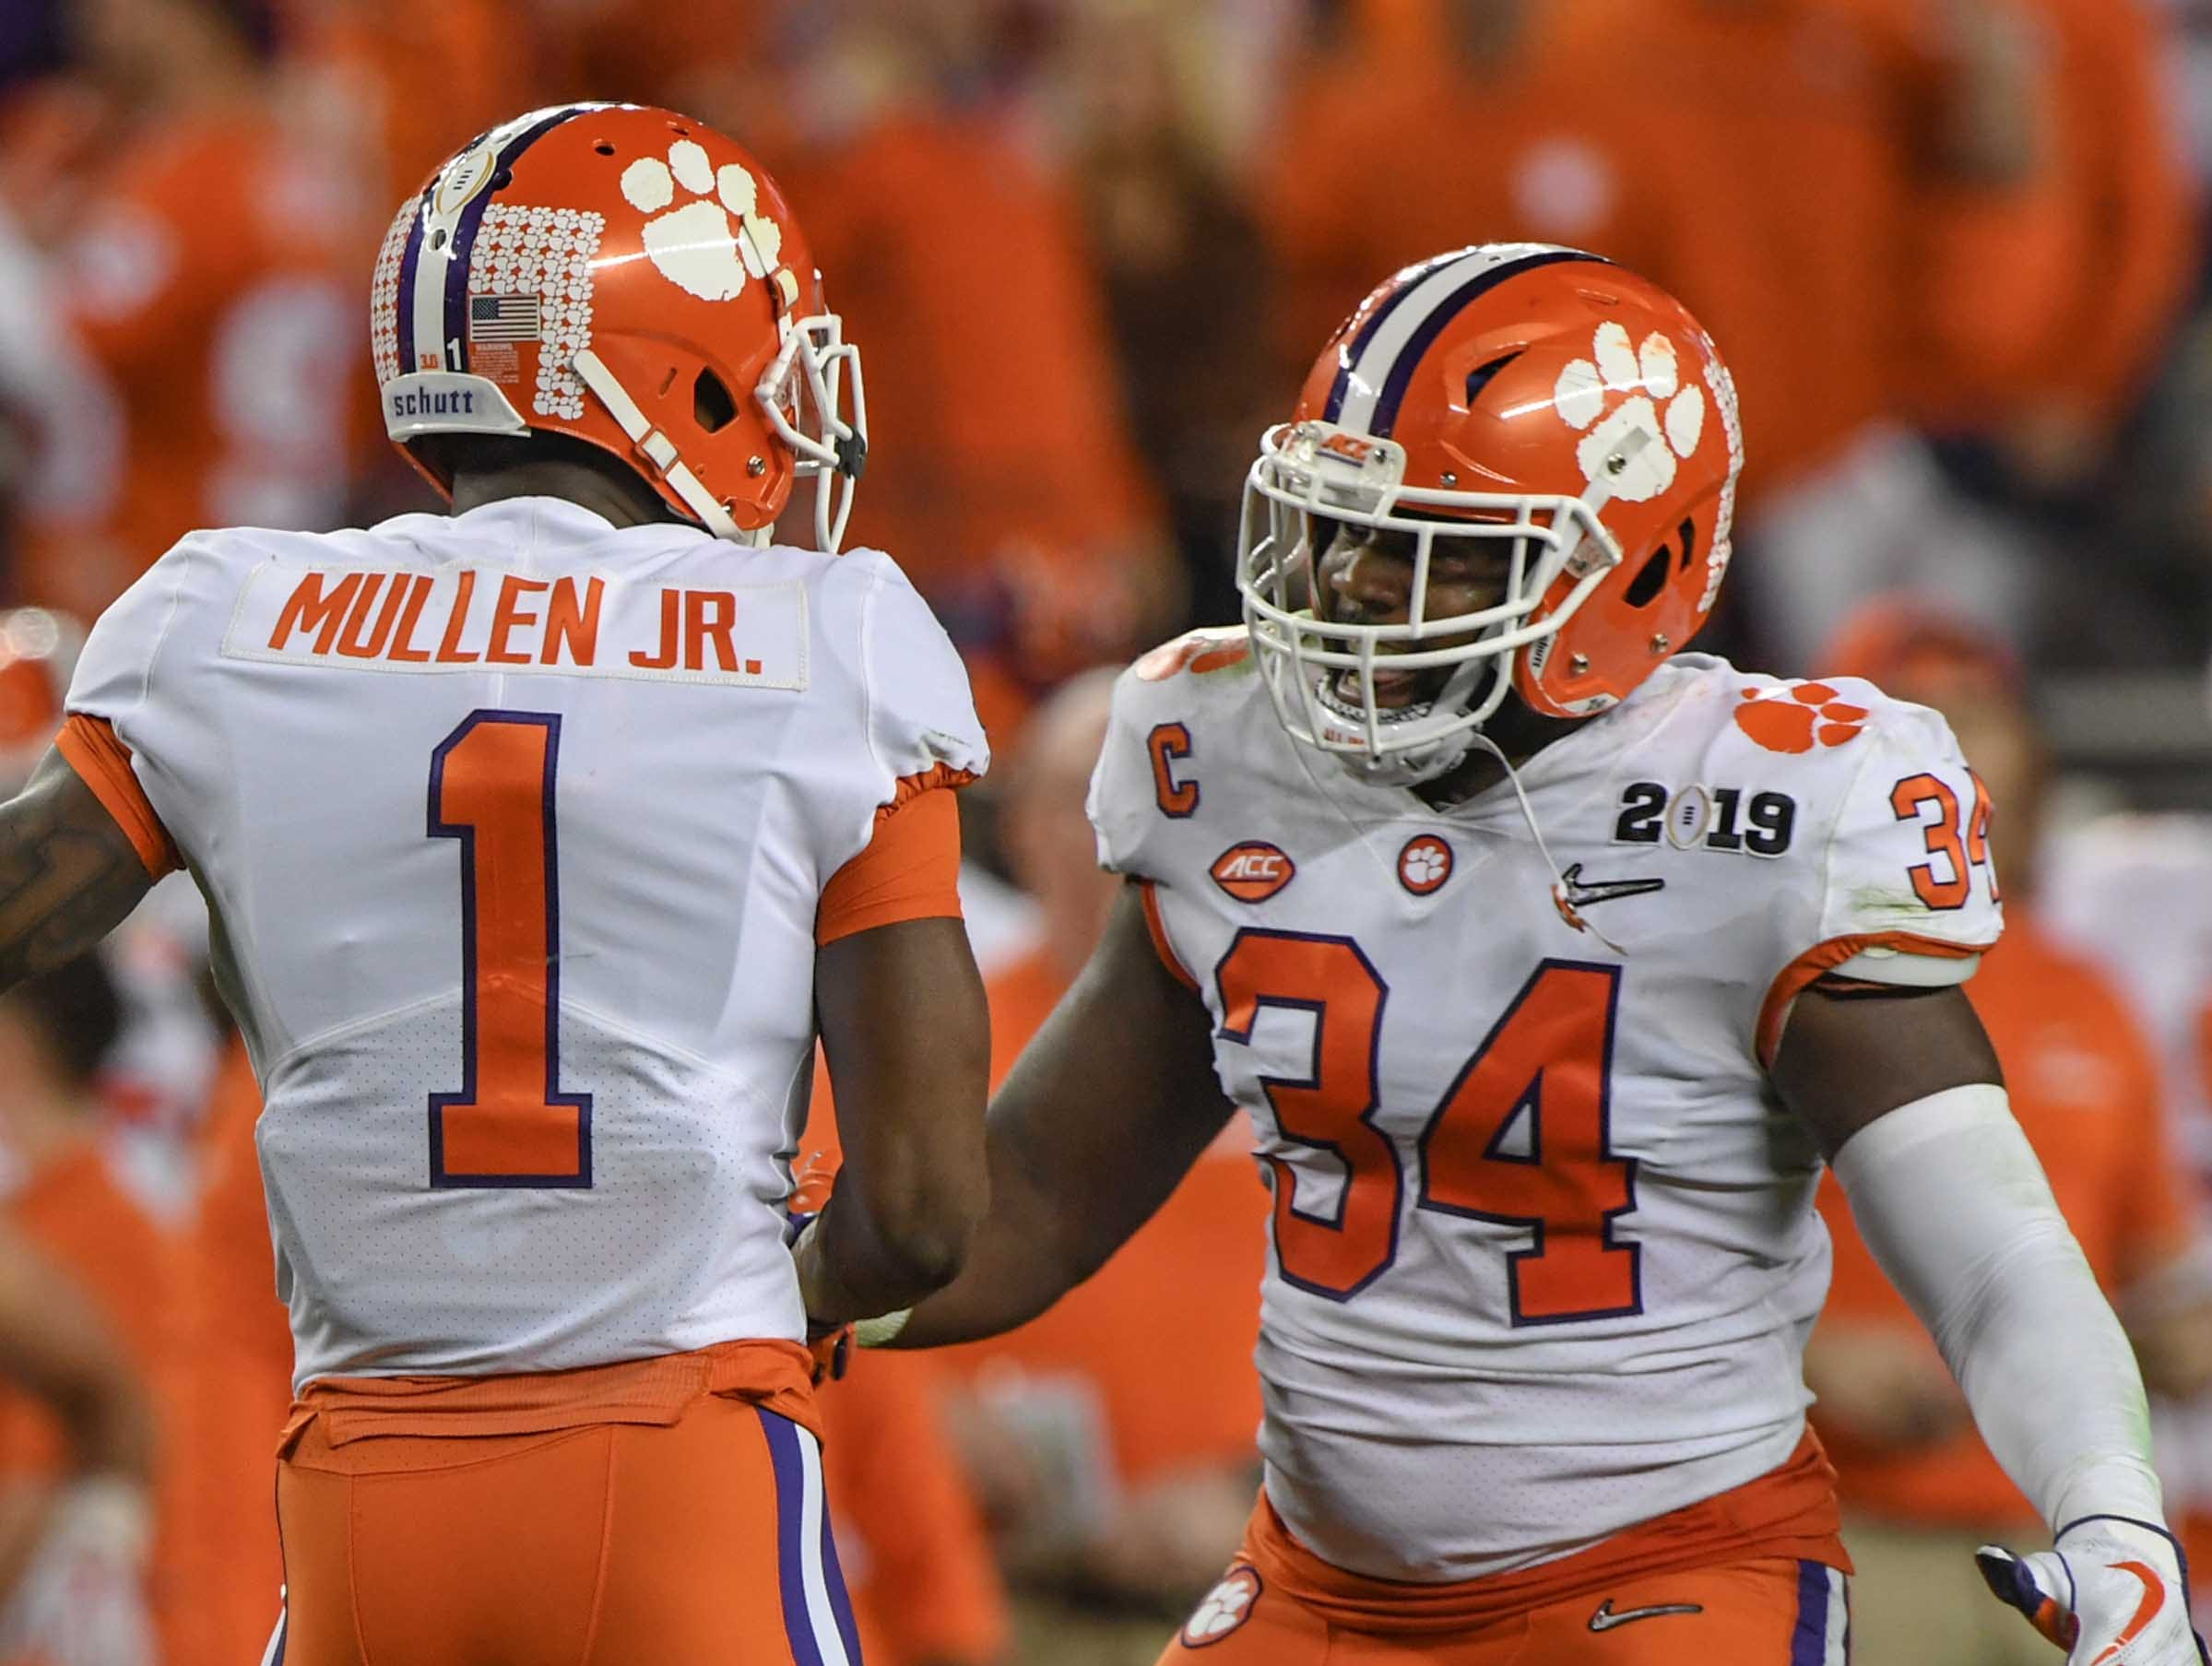 Clemson cornerback Trayvon Mullen (1) and linebacker Kendall Joseph (34) celebrate a stop against Alabama during the the second quarter of the College Football Championship at Levi's Stadium in Santa Clara, California Monday, January 7, 2019.